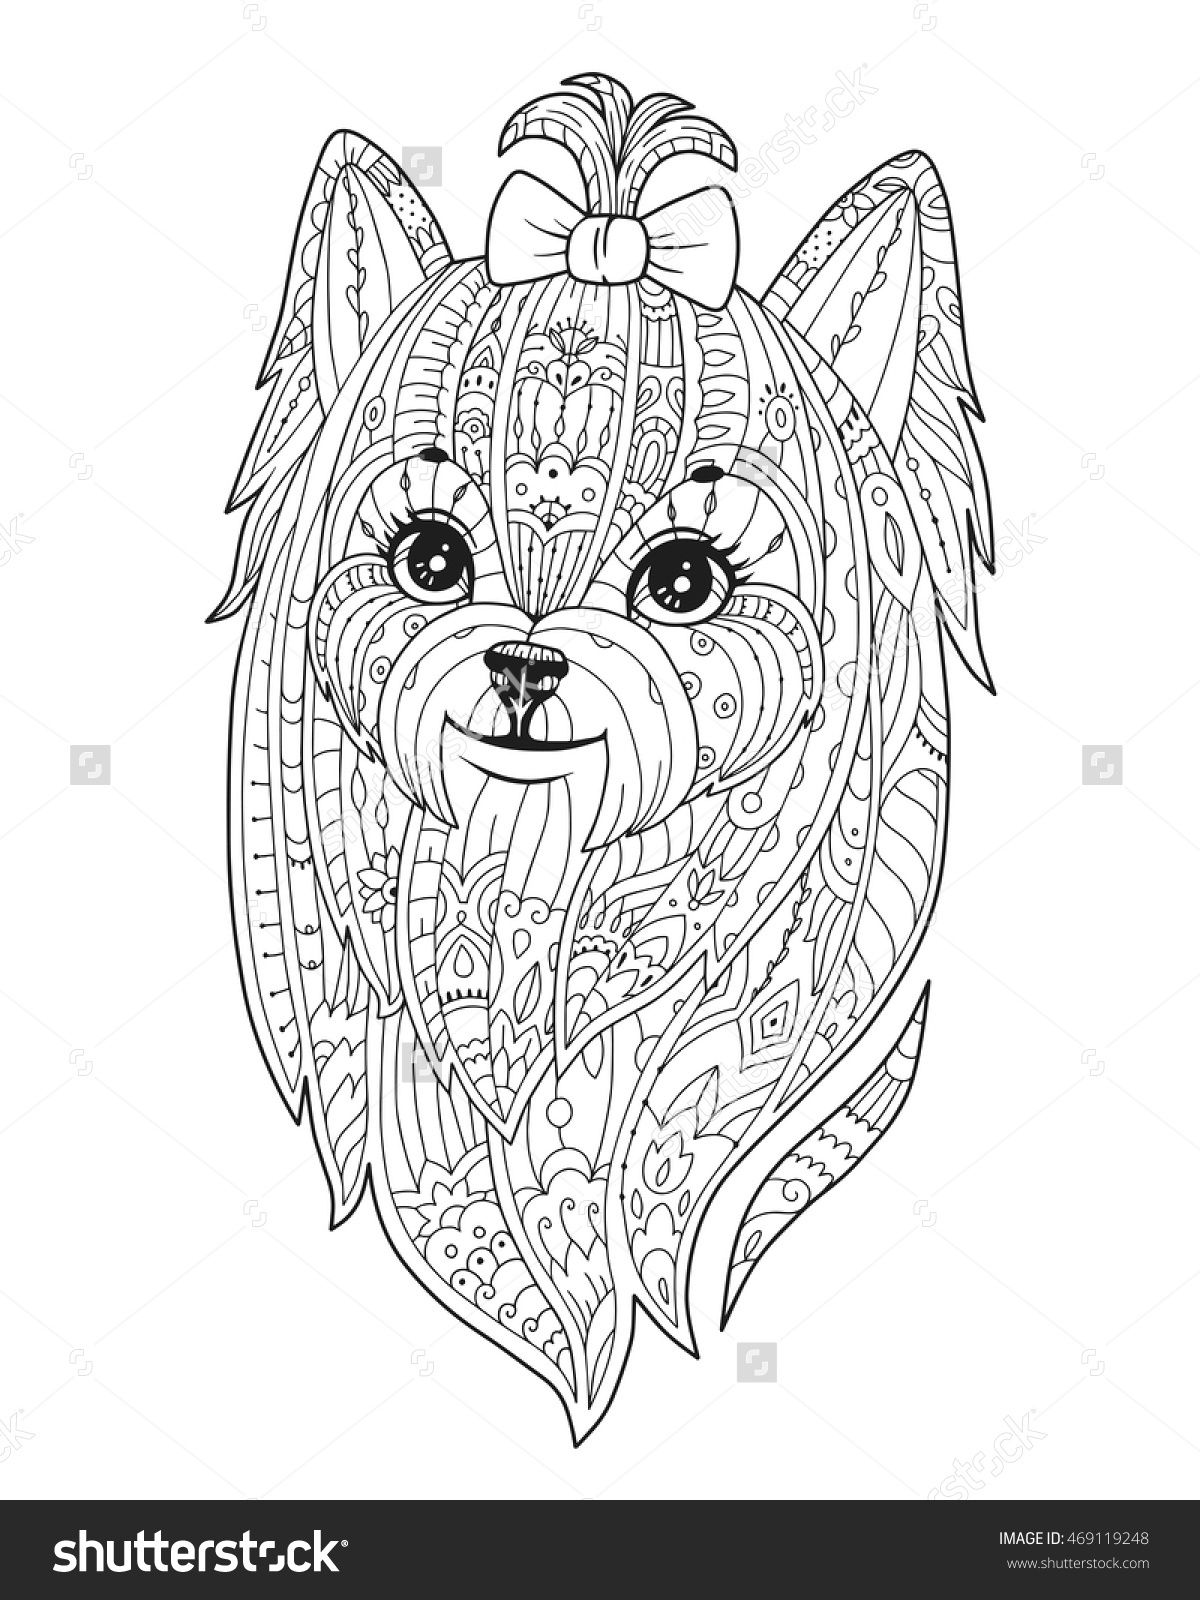 Adult Coloring Page With Purebred Dog In Zendala Style Doodle Yorkie Coloring Pages